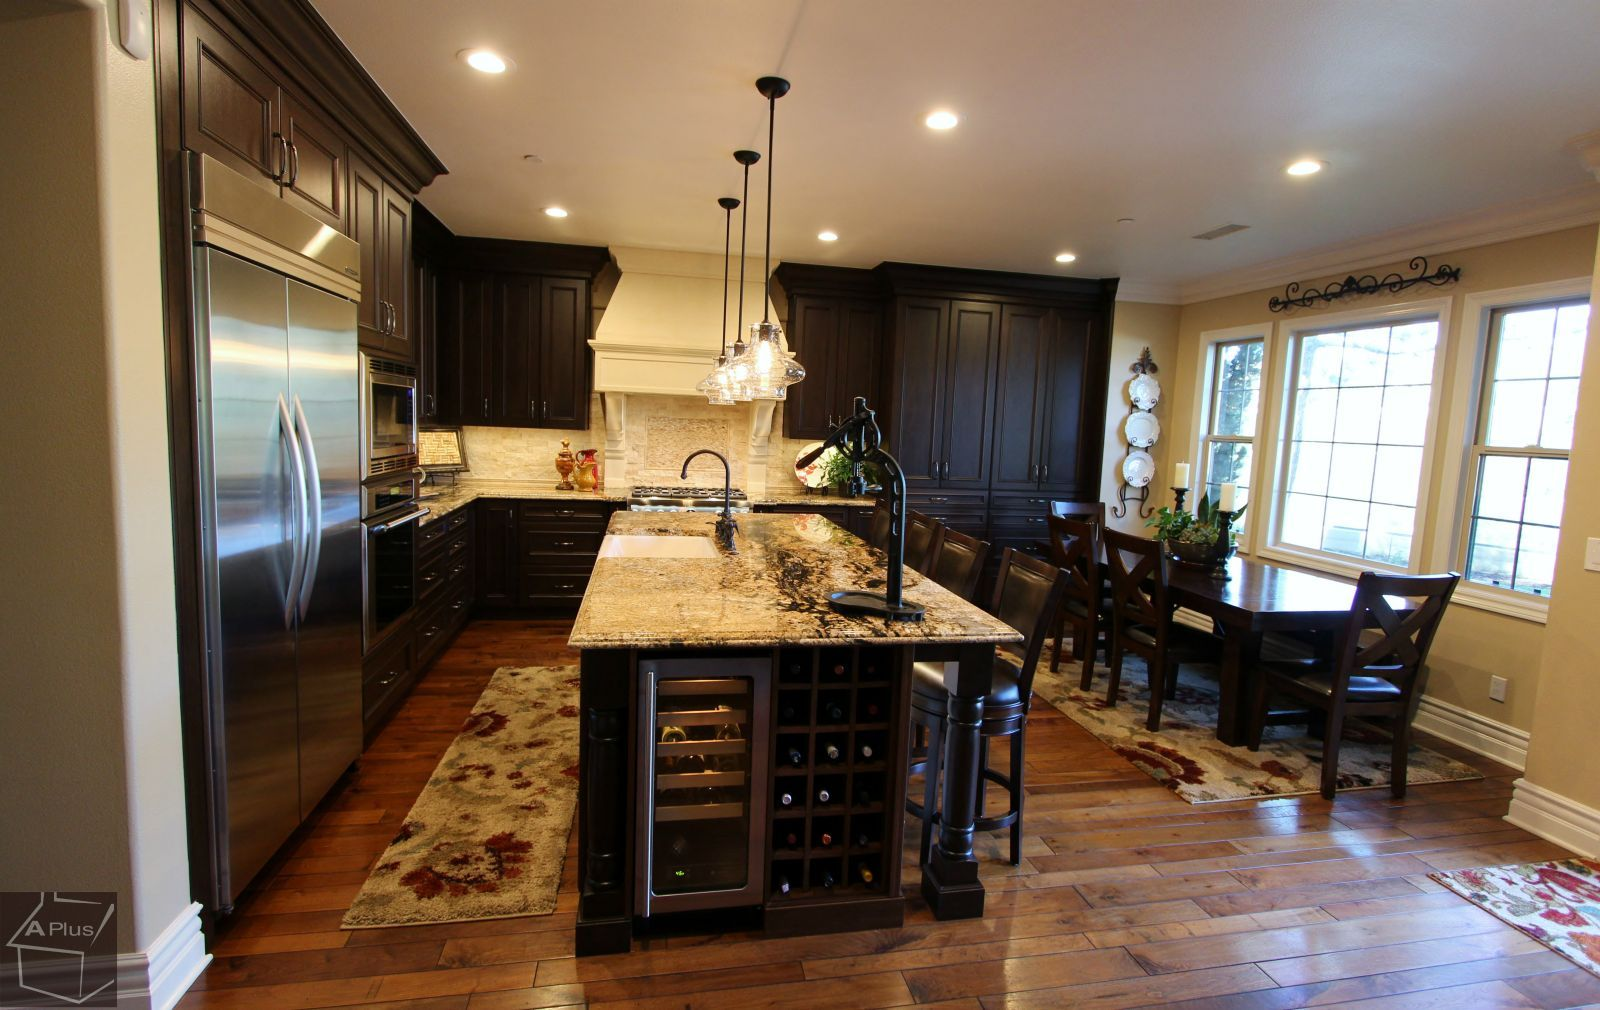 design build traditional style kitchen remodel san clemente orange county - Orange County Kitchen Remodel